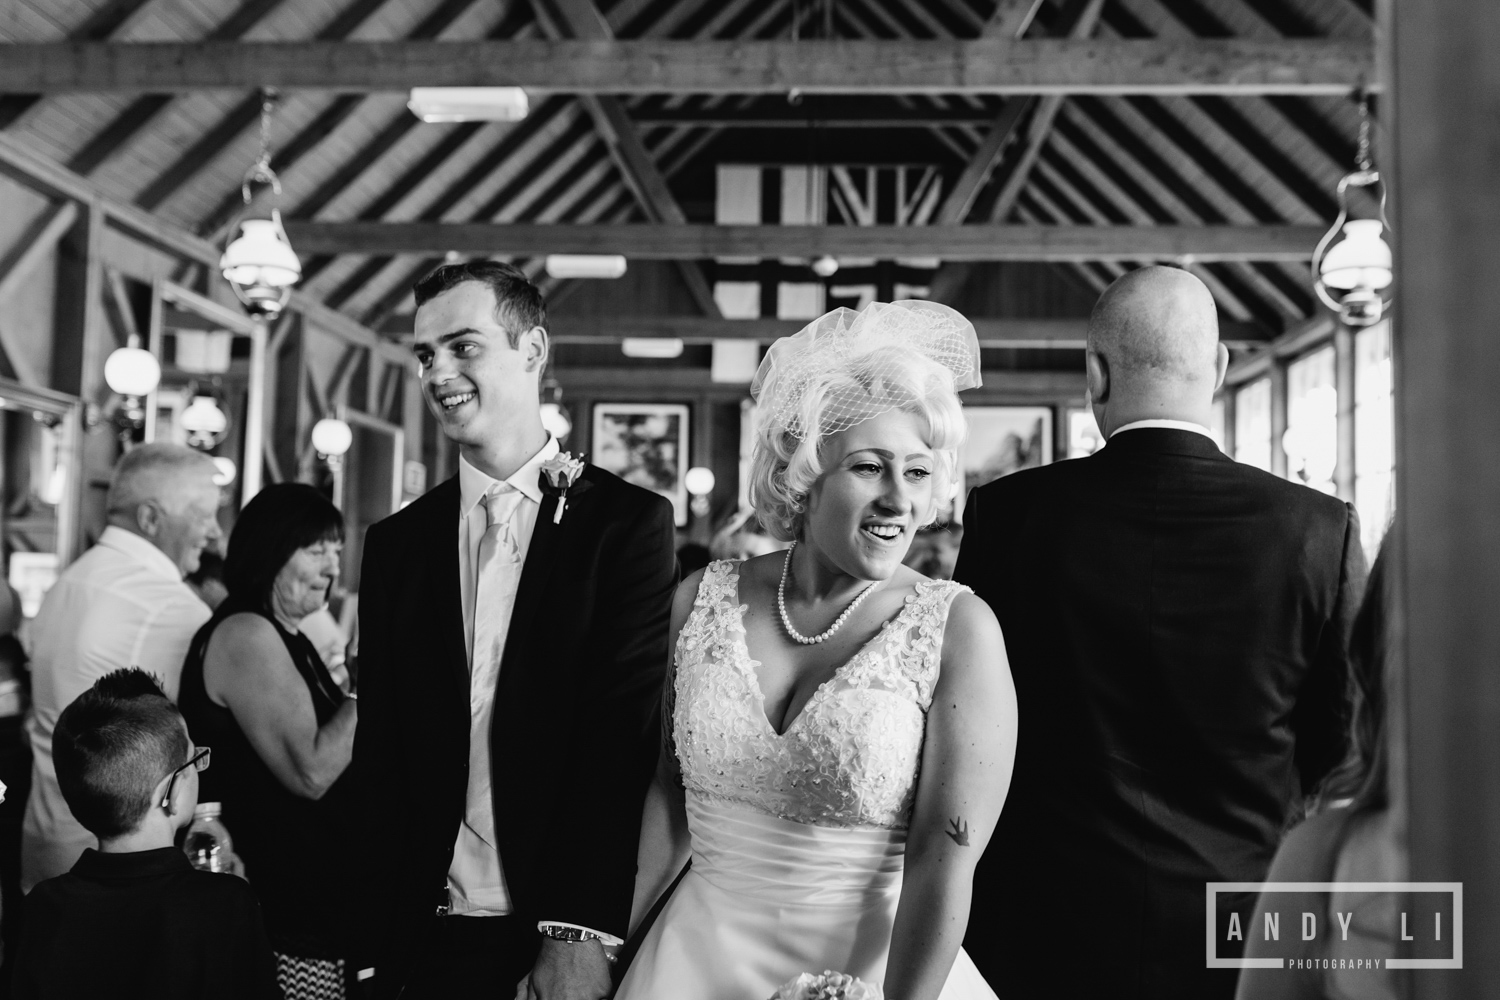 Blists Hill Ironbridge Wedding Photography-Andy Li Photography-340.jpg